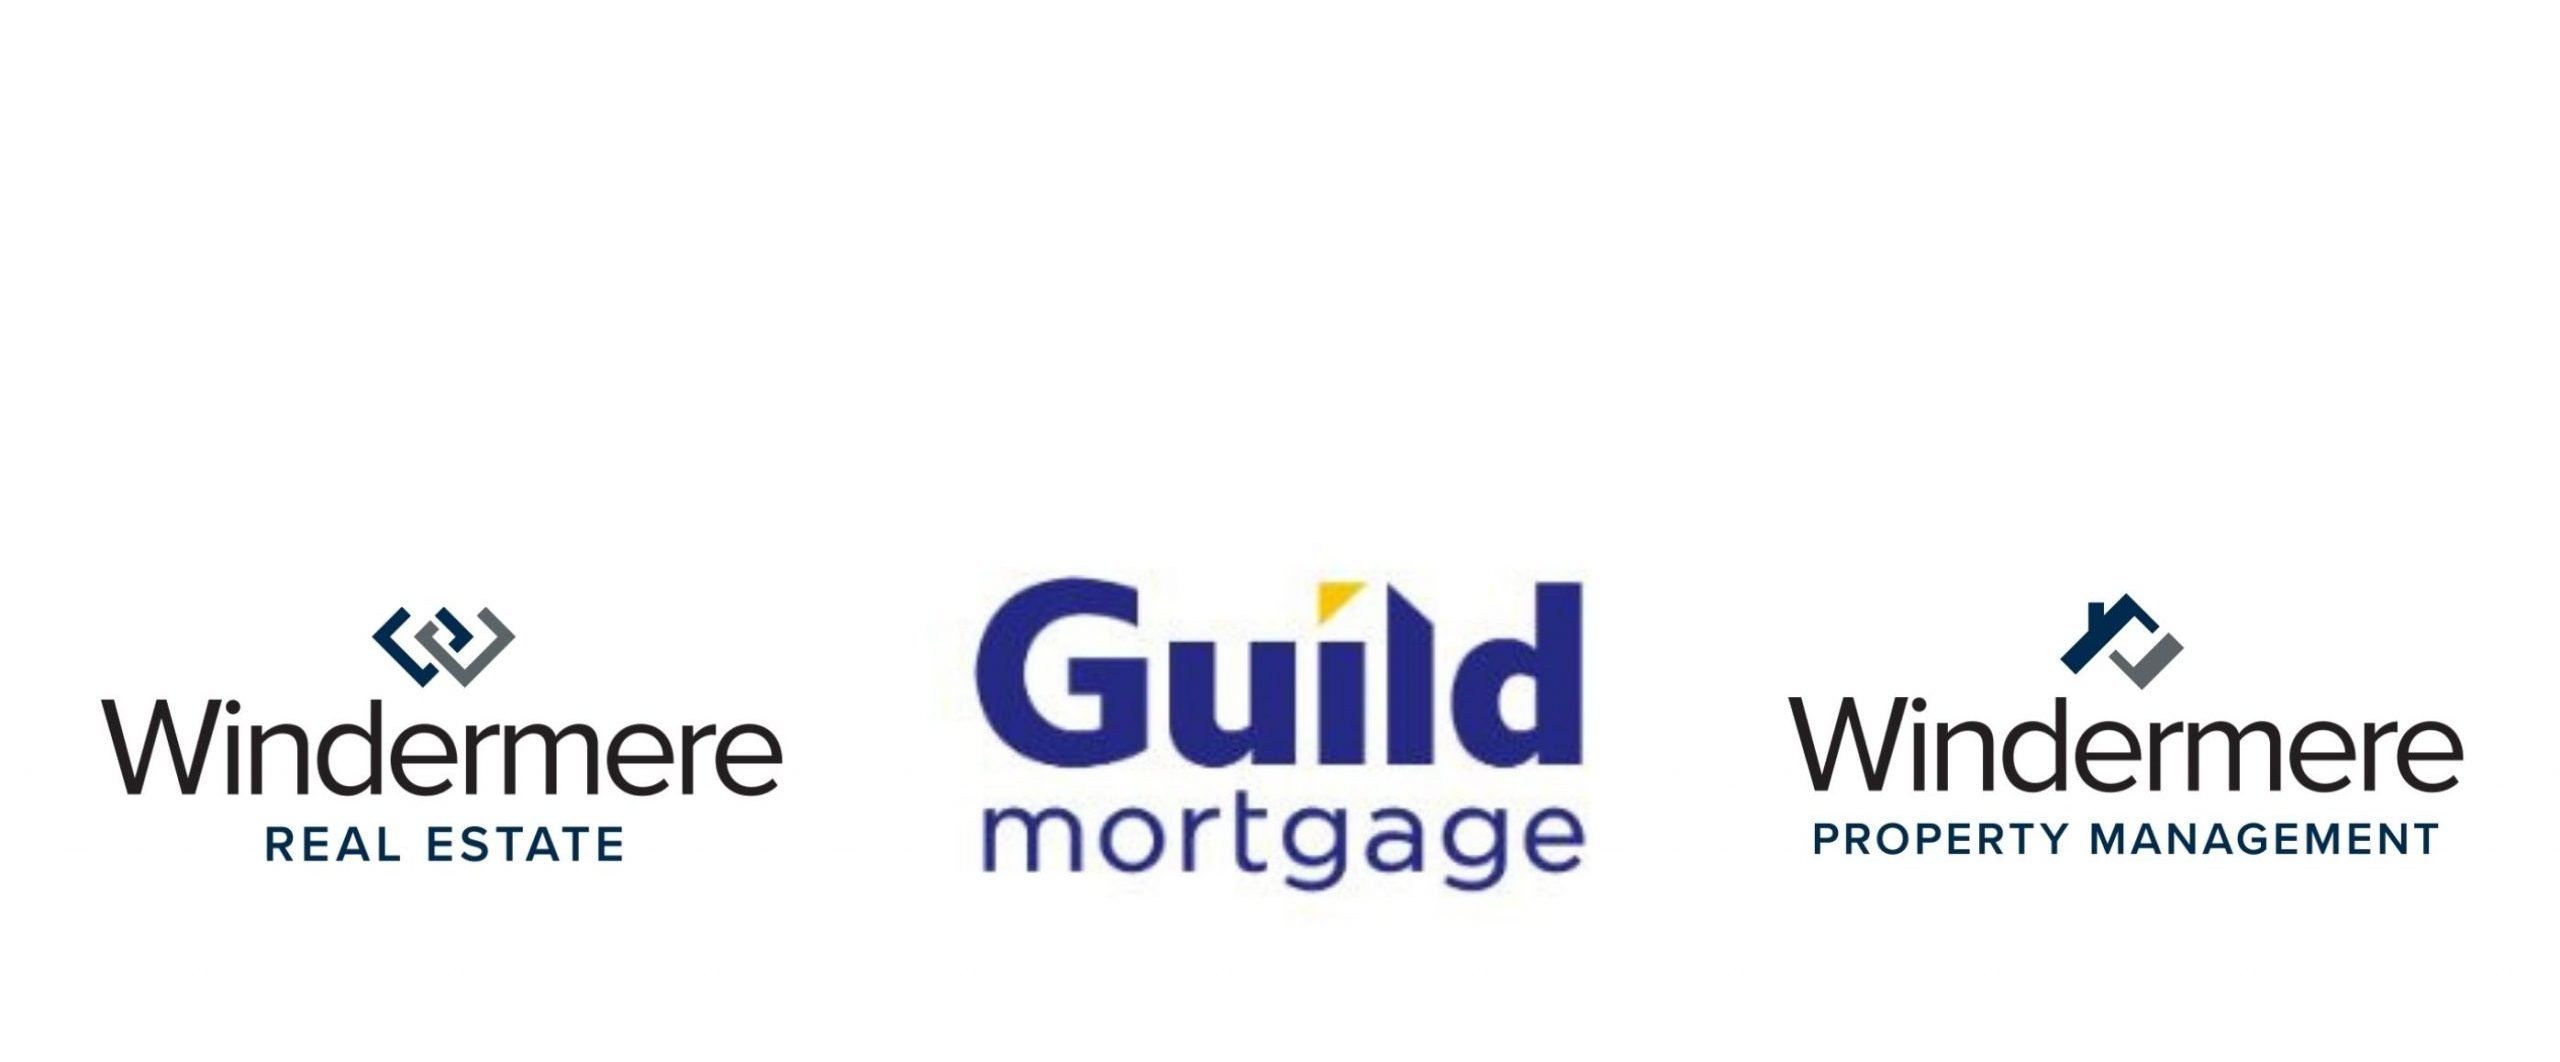 Windermere Real Estate, Windermere Property Managment, Guild Mortgage, Whidbey Island, Buy, Sale, Rent, Mortgage, Loans